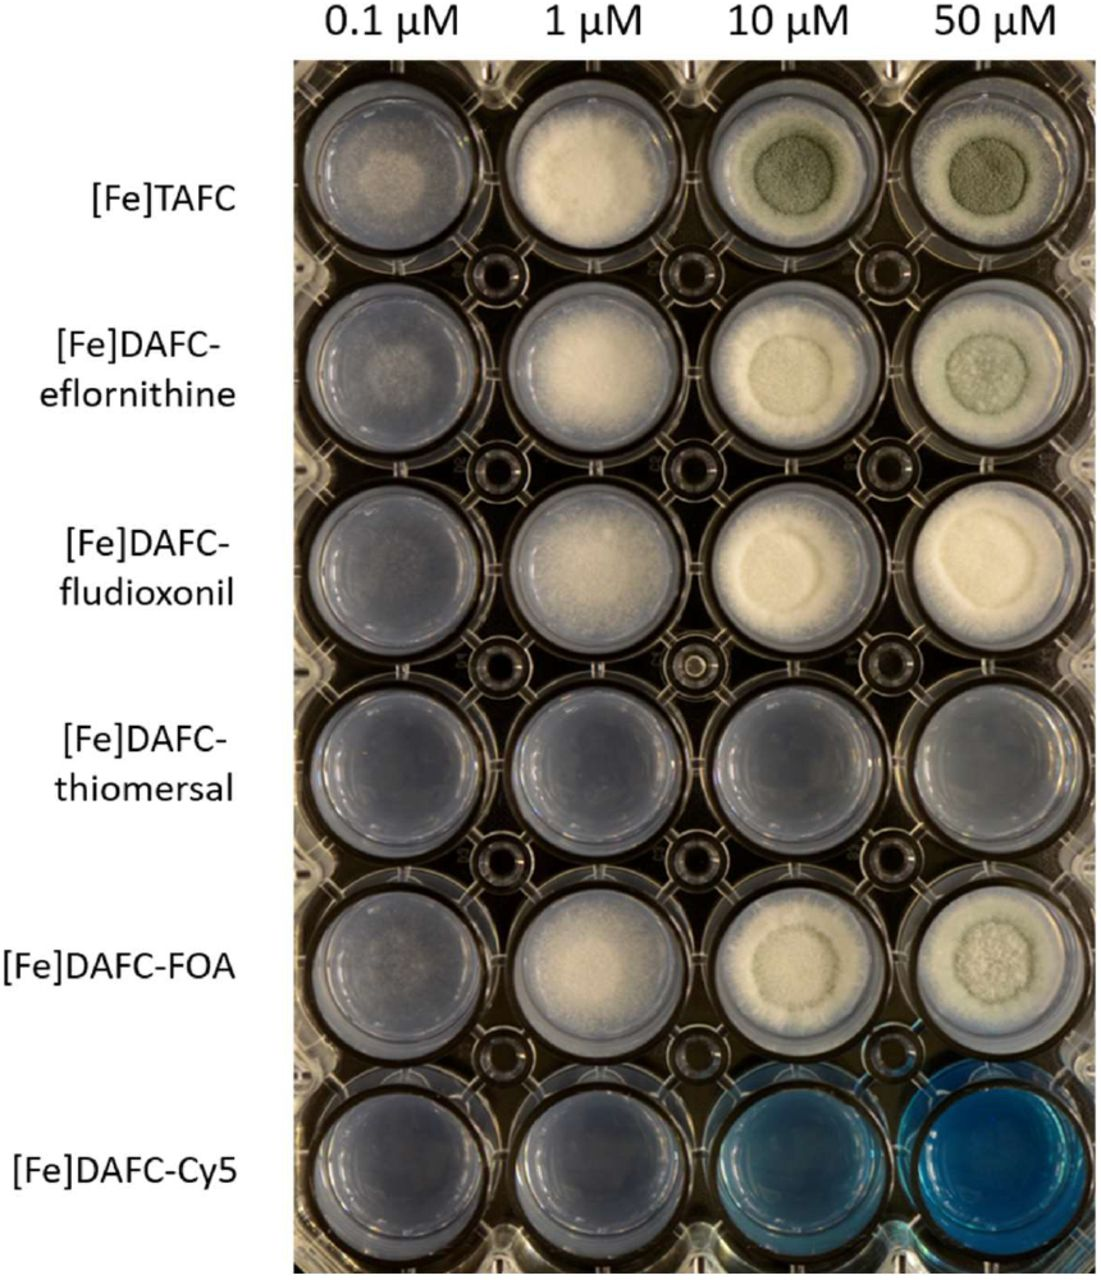 Growth promotion of A. fumigatus mutant strain Δ sidA /Δ ftrA after 48 h incubation at 37°C on iron depleted AMM with different concentrations of iron labelled conjugates. Hyphal growth can be distinguished from greenish (sporulation) and whitish (sterile) mycelia.